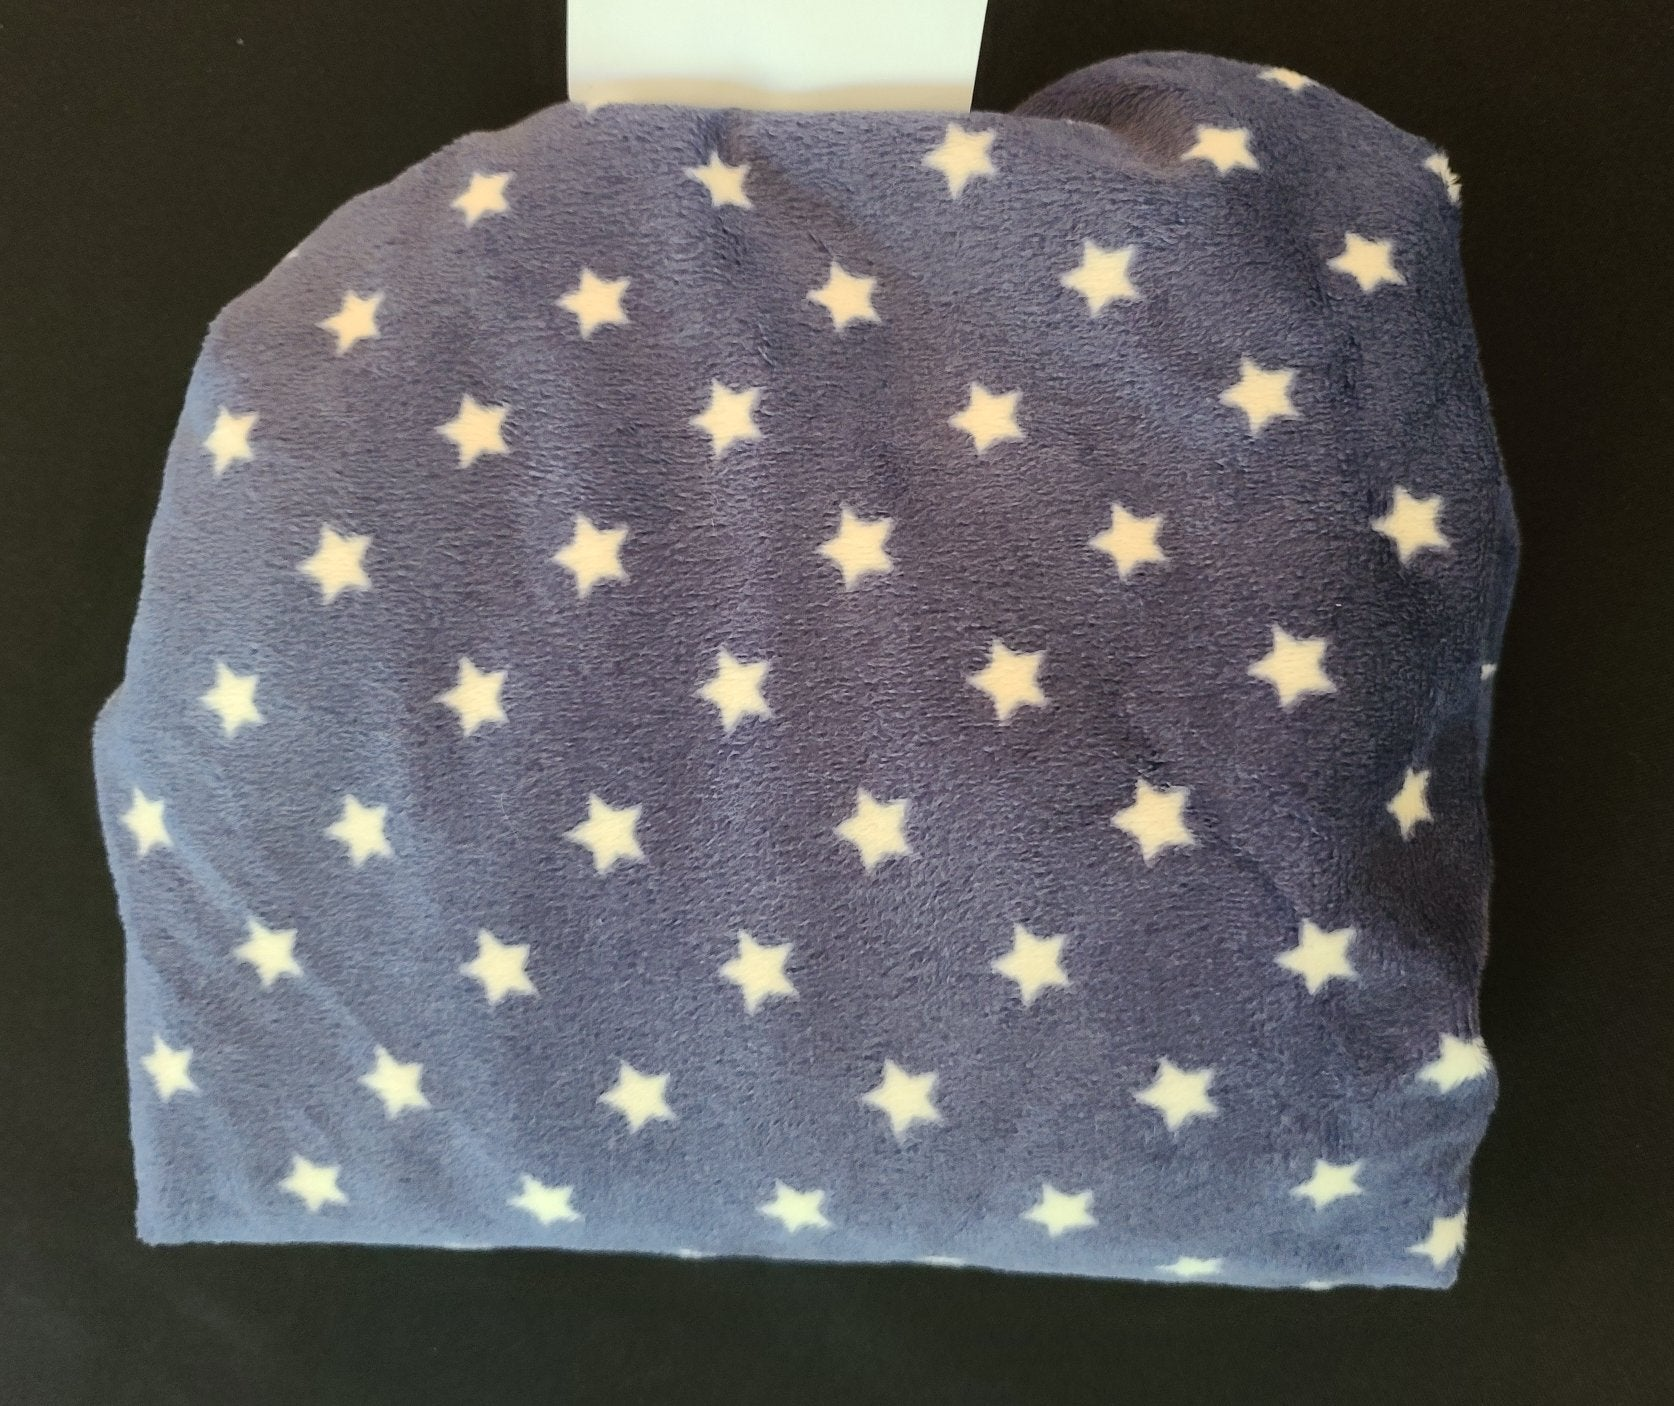 COCALO BABY Plush changing pad cover; blue w/ stars